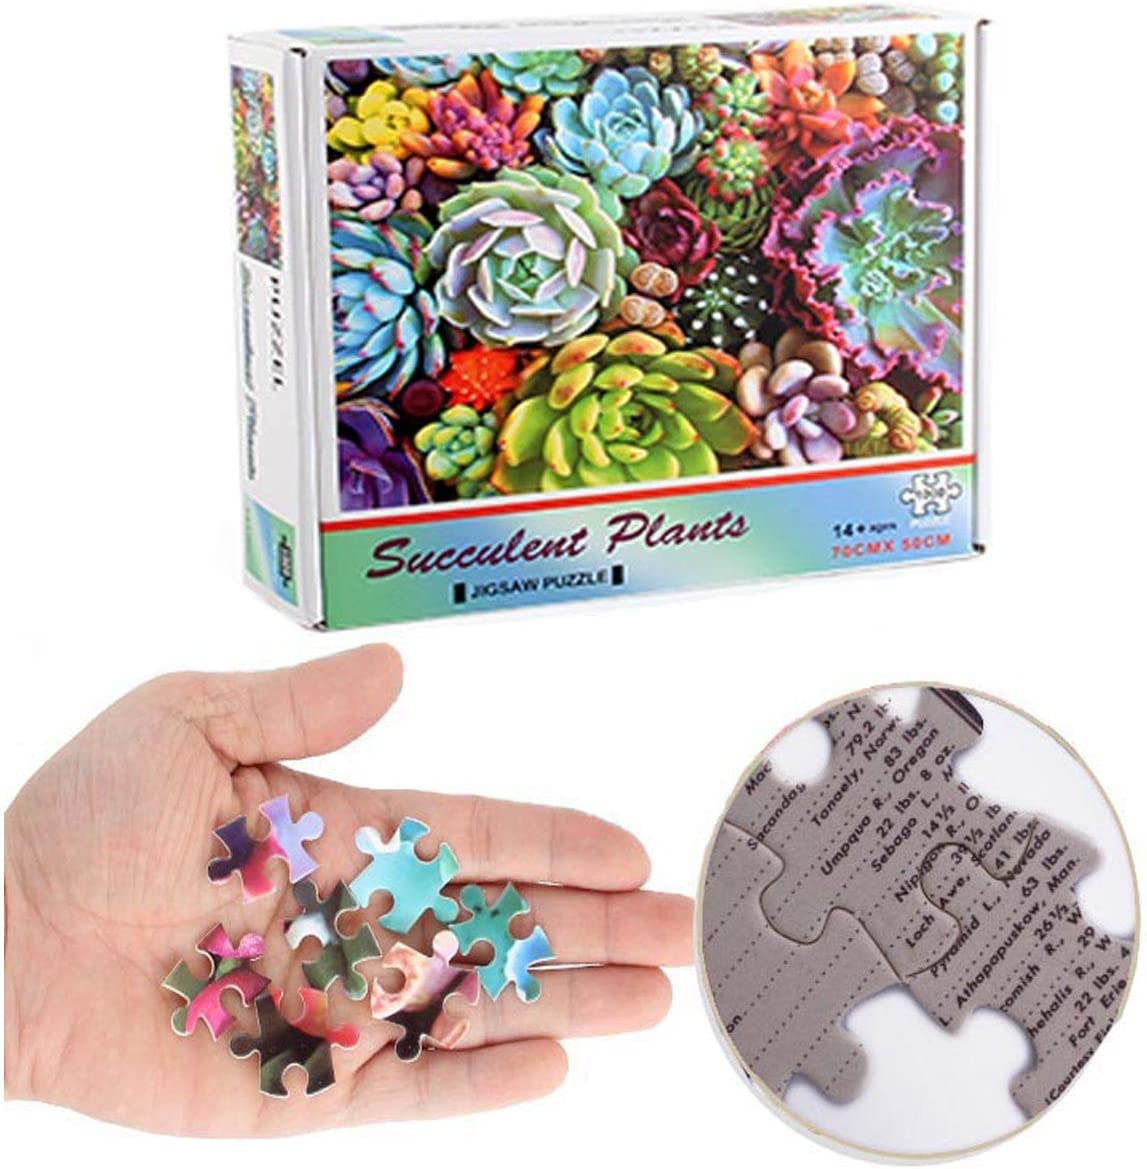 Jigsaw Puzzles 1000 Pieces for AdultsSucculentsJigsaw Puzzle Home Game for Men Women Kids Recycled Cardboard